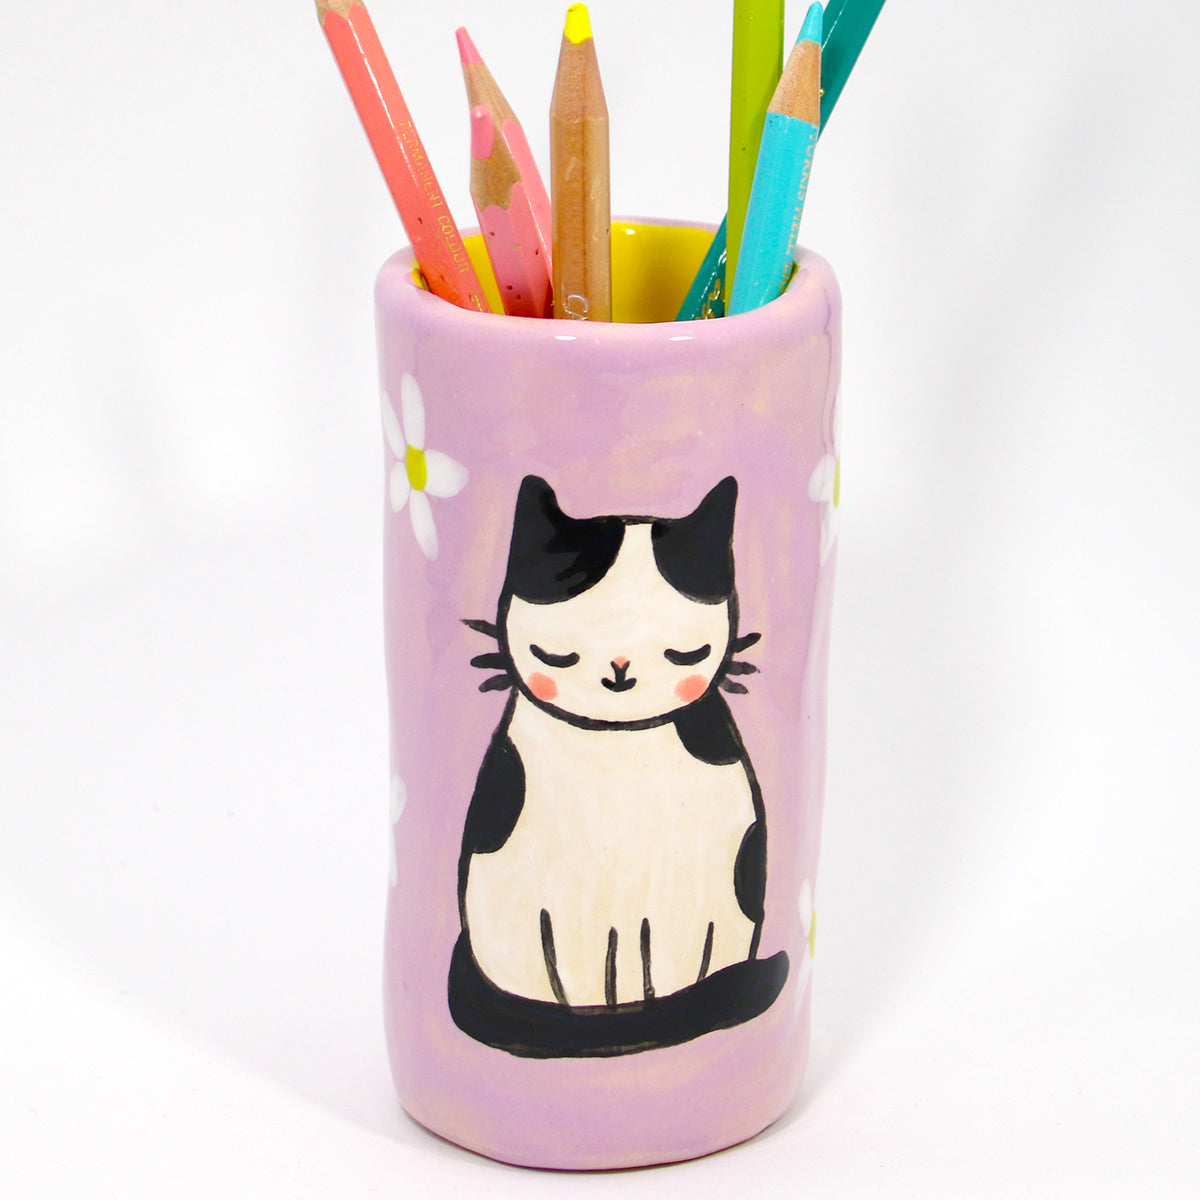 Ceramic Kitty Planter #1027 - L